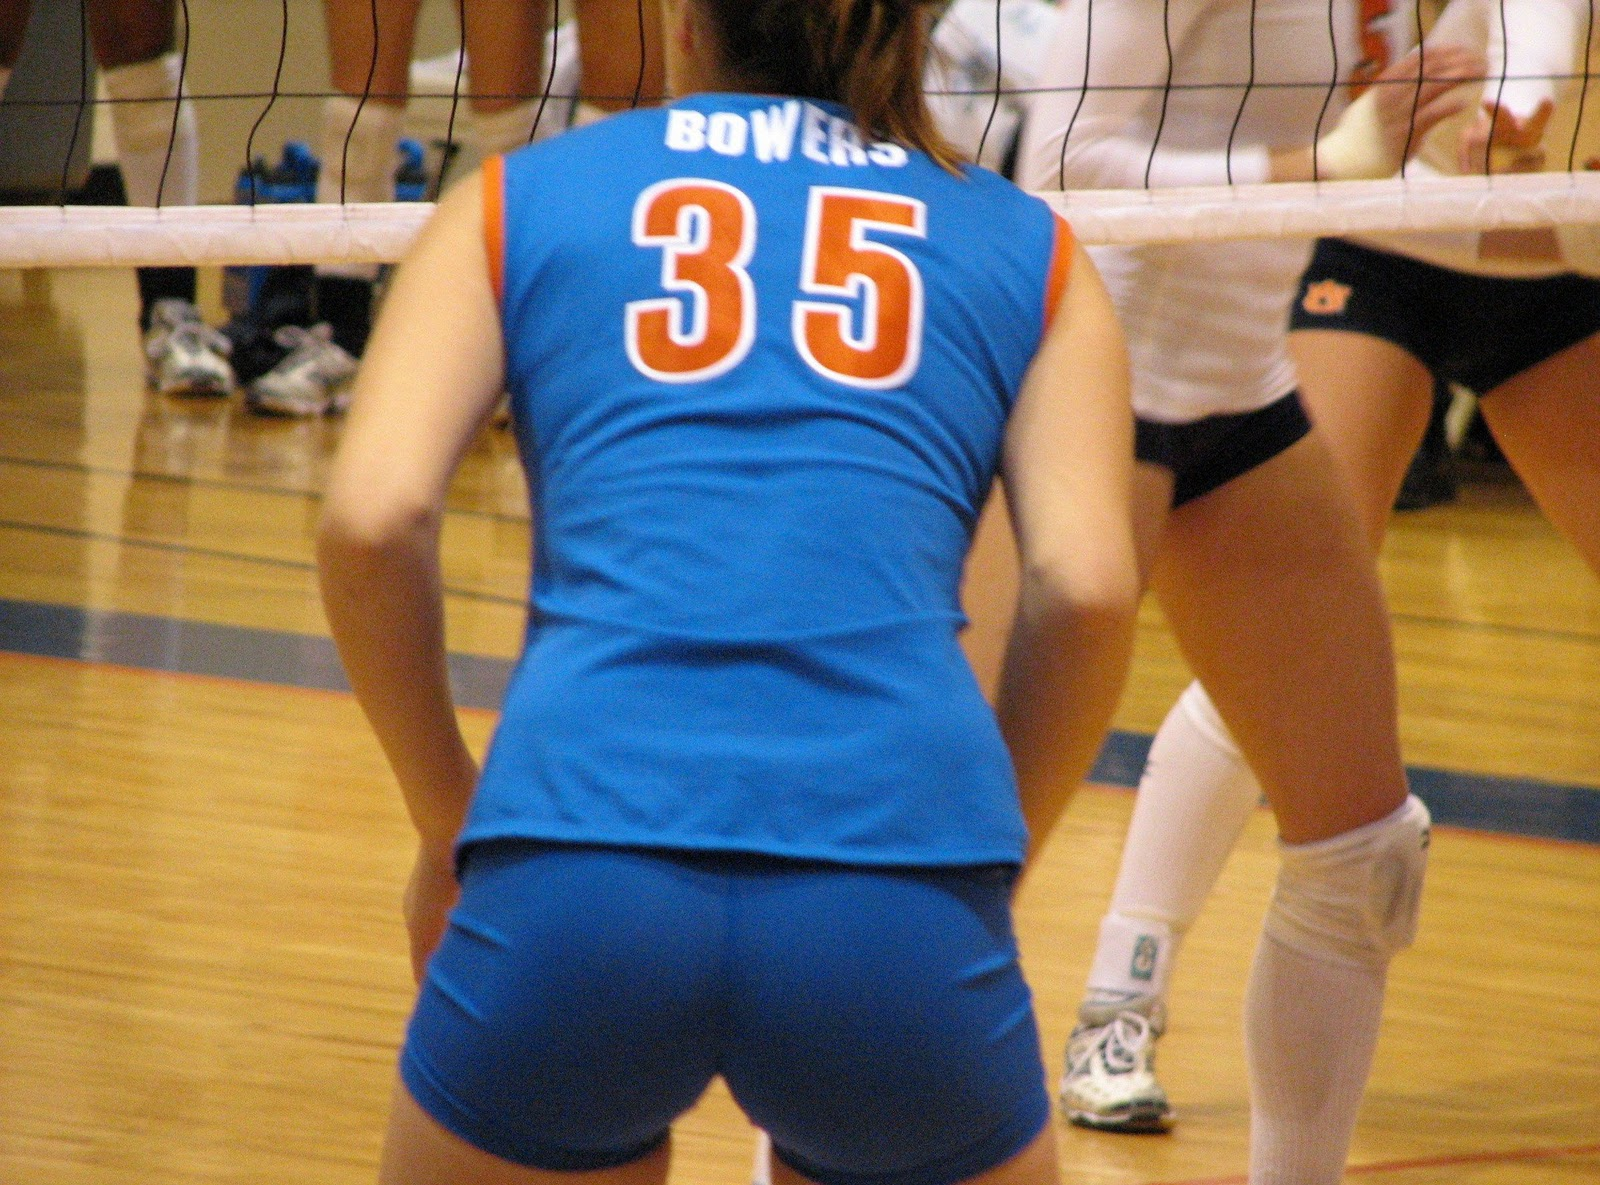 Volley Ball Butt 72